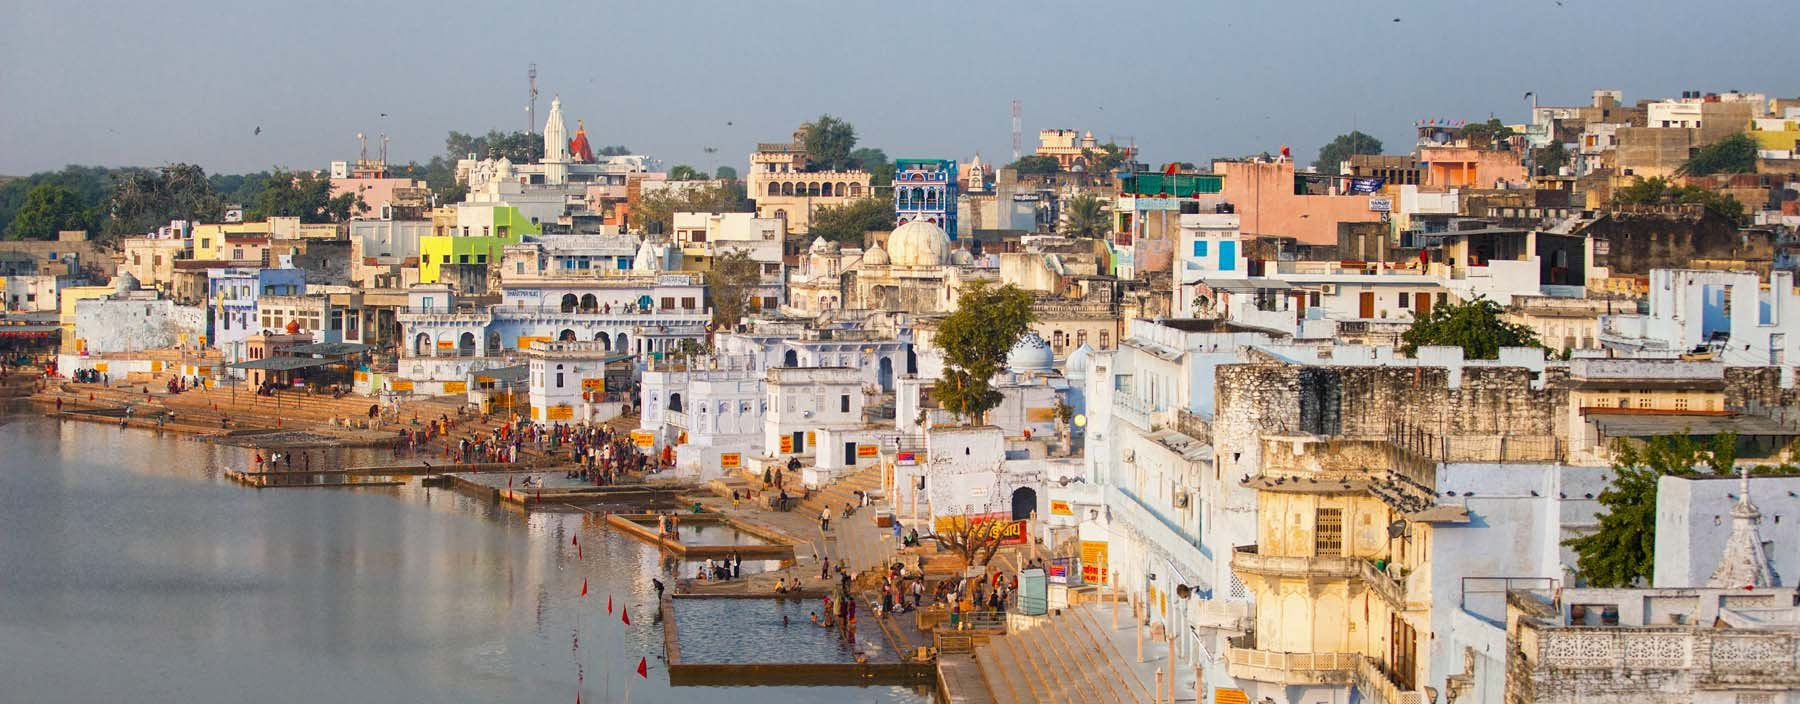 in, pushkar, city and the sacred lake..jpg